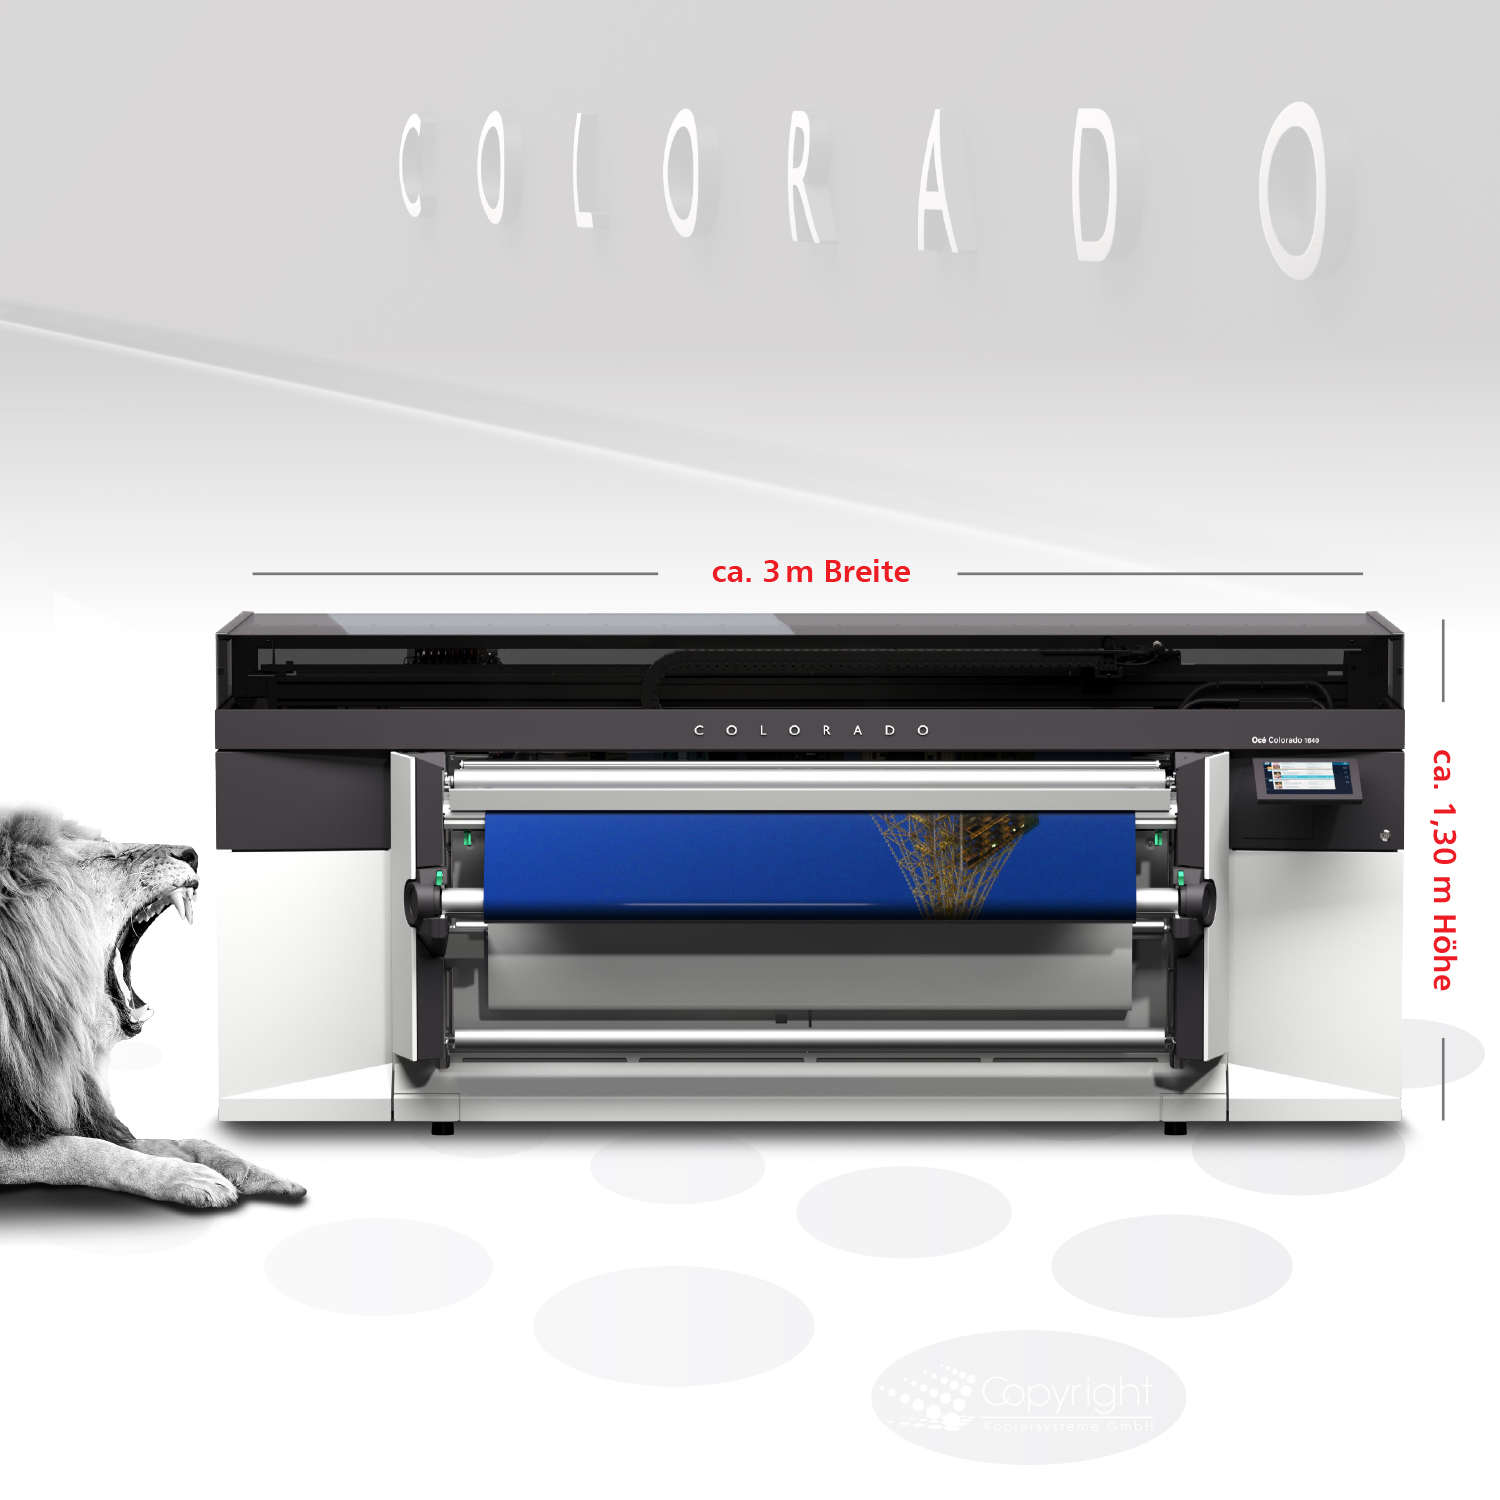 Océ Colorado 1640 Printer